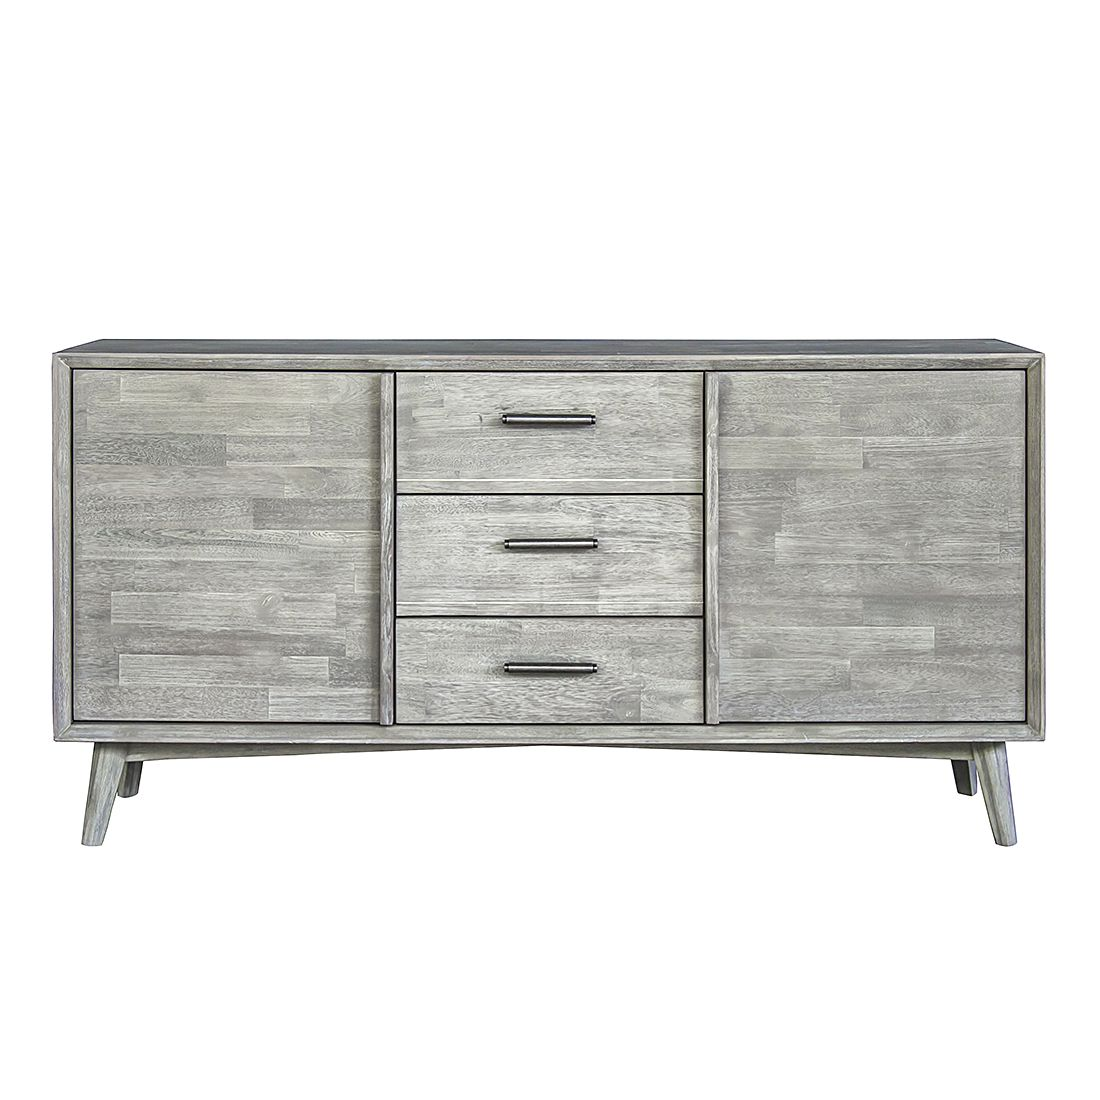 sideboard yomo akazie teilmassiv m rteens g nstig online kaufen. Black Bedroom Furniture Sets. Home Design Ideas